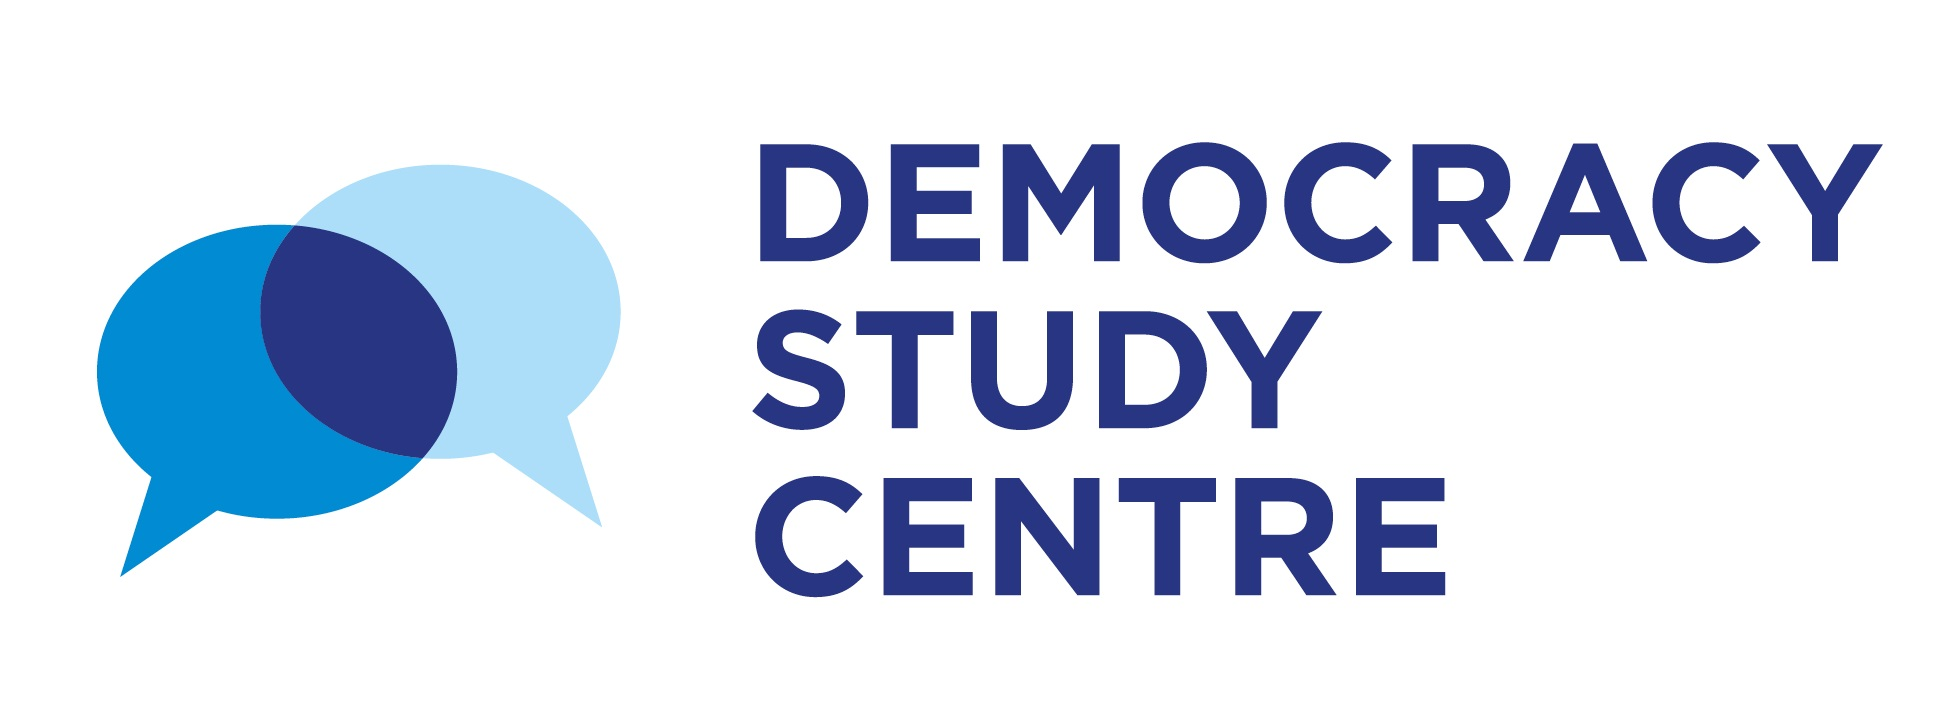 1Logo_Democracy_Study_Centre_RGB